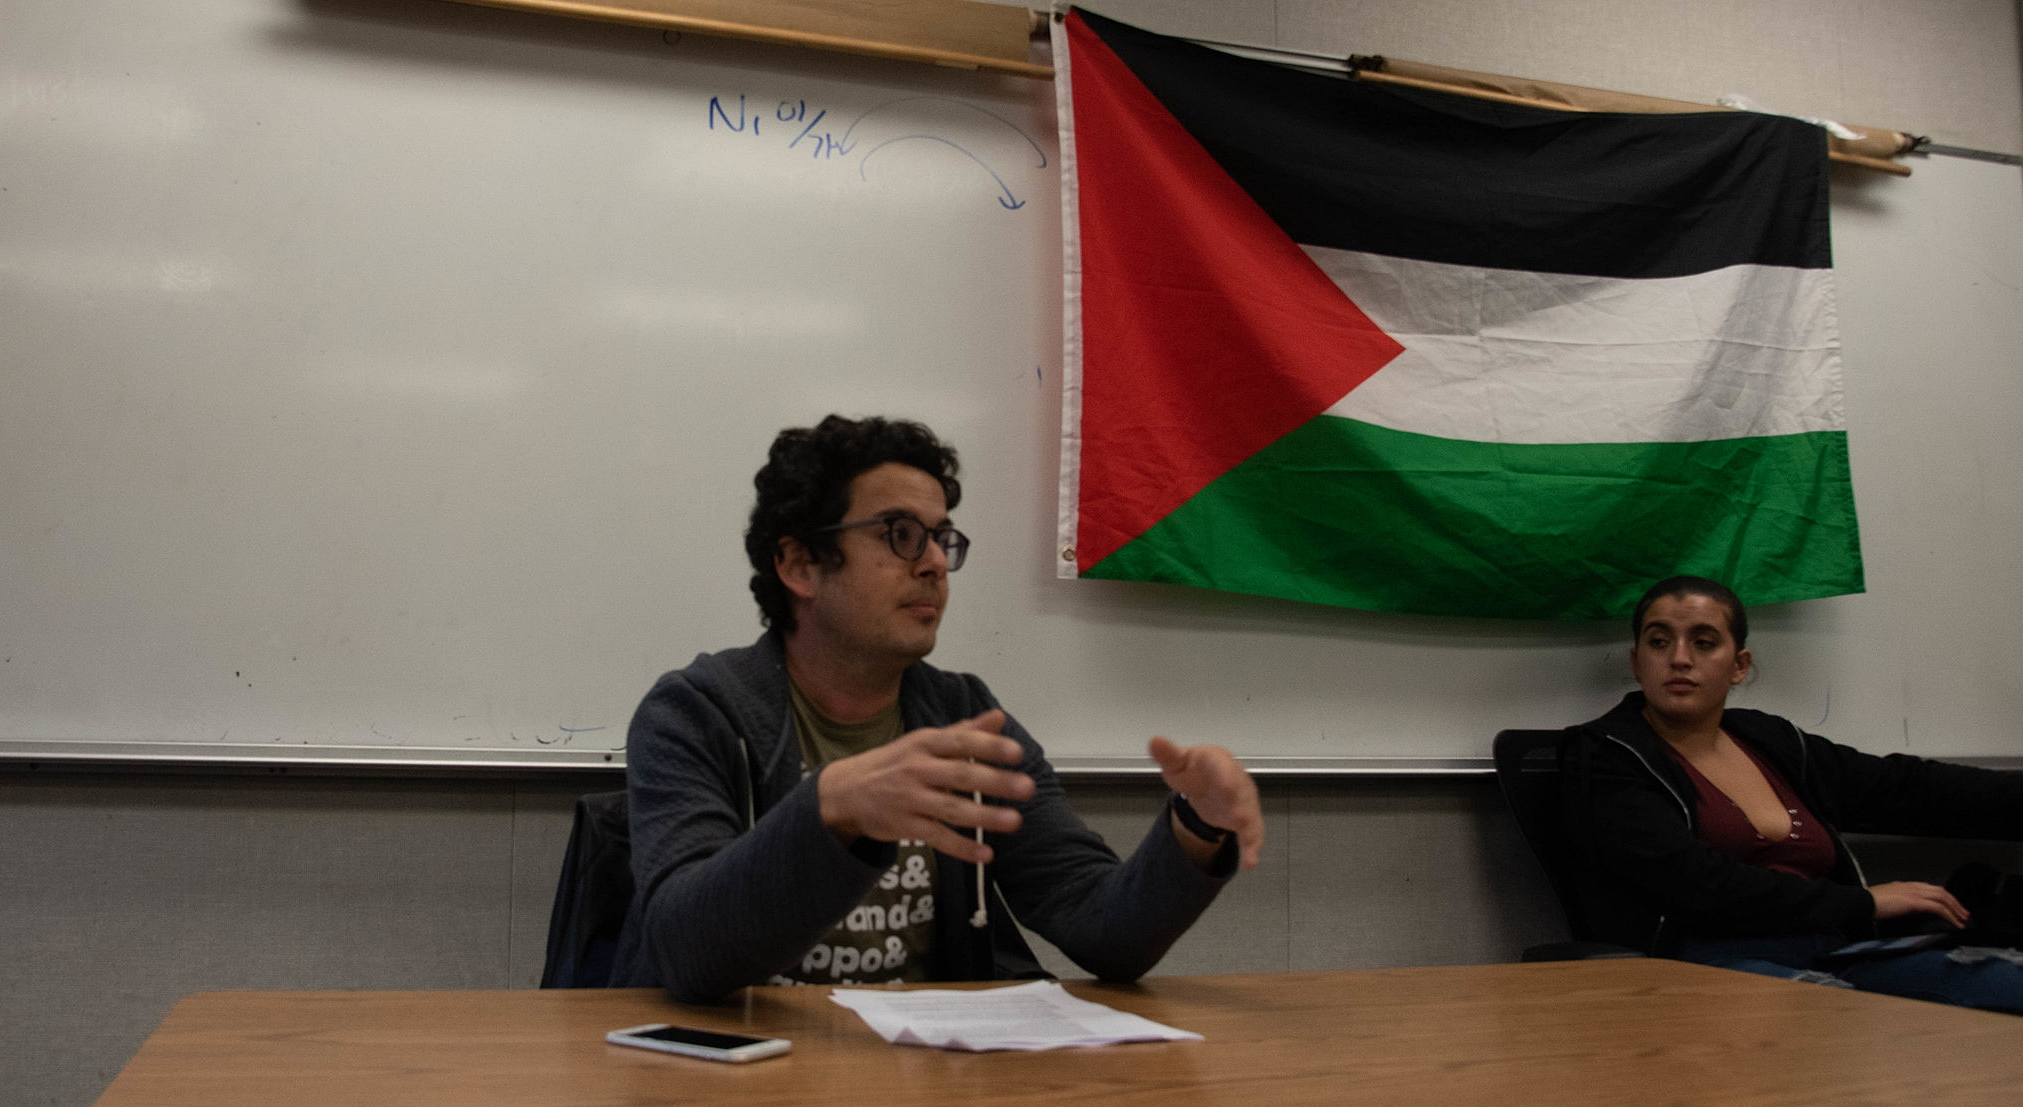 Activist Omar Zahzah speaks on the history of Palestine and the historic events that led to the creation of the state of Israel at a meeting for the Santa Monica College chapter of Students of Justice for Palestine (SJP) on November 29, 2018 in Santa Monica, California (Oskar Zinnemann/Corsair Photo)